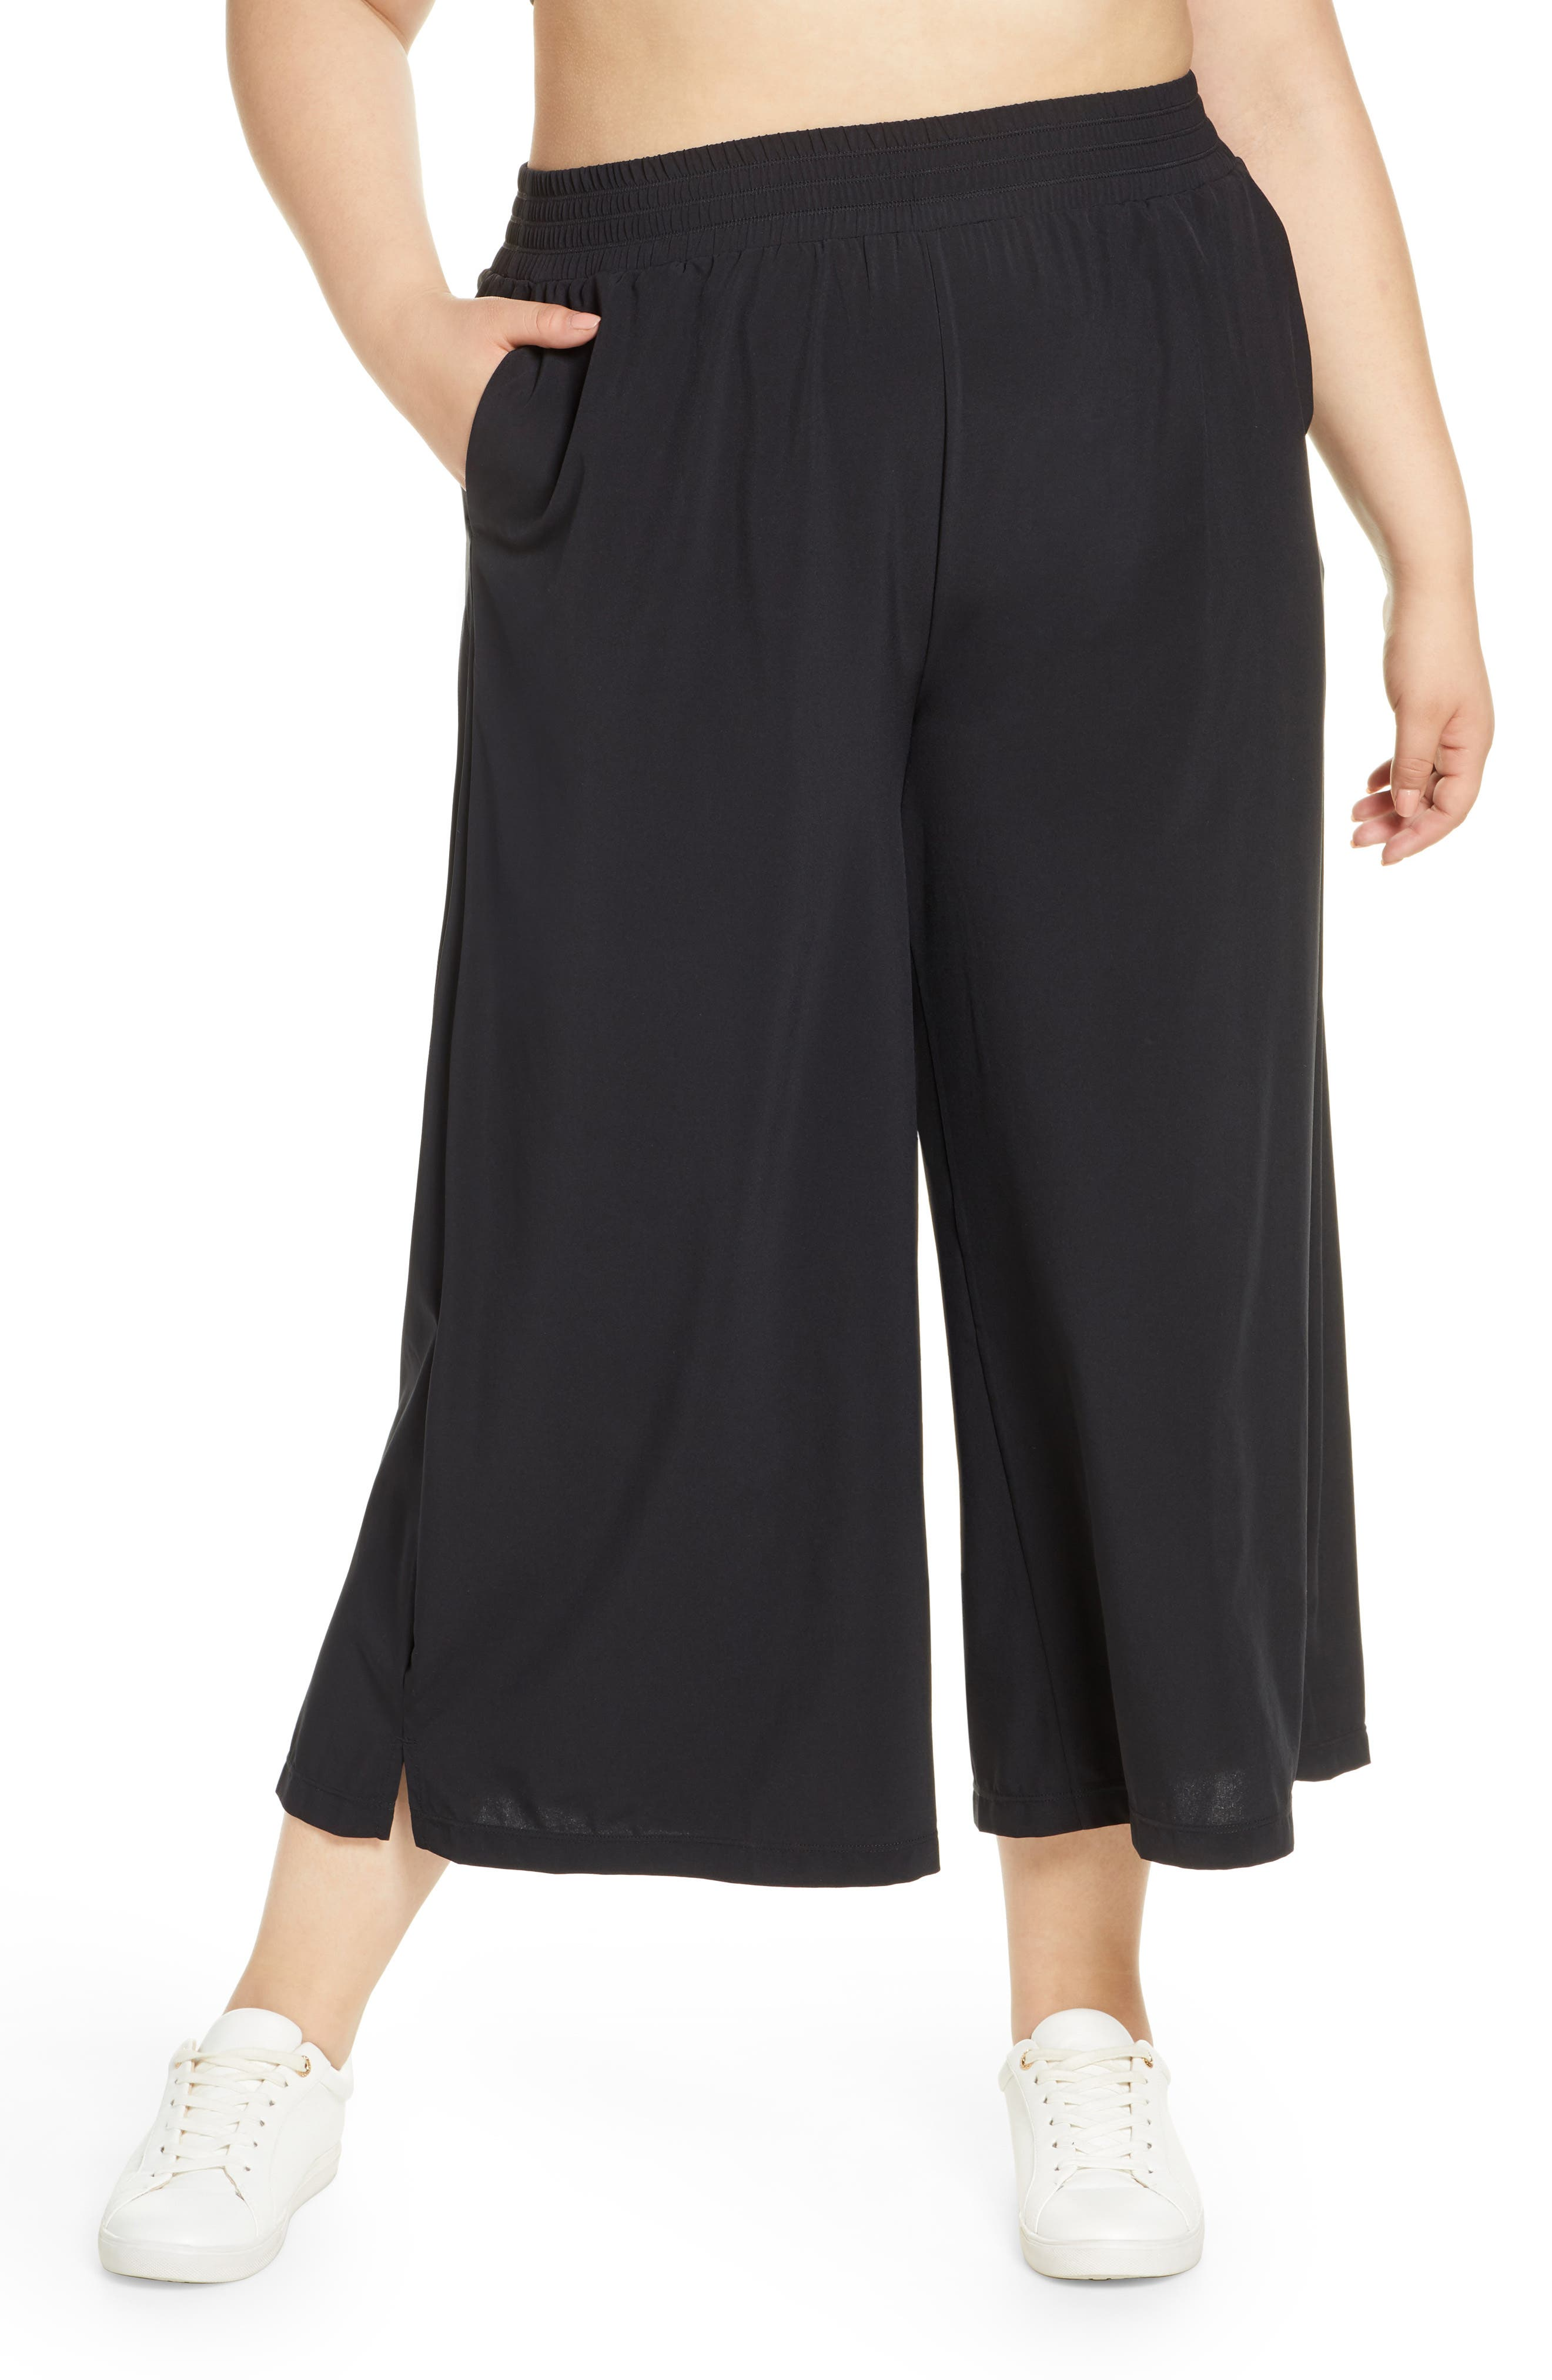 Swingy cropped pants with a comfortable high rise and convenient front pockets are perfect for working out or lounging at home. Style Name: Zella High Waist Crop Wide Leg Woven Pants (Plus Size). Style Number: 5950697. Available in stores.